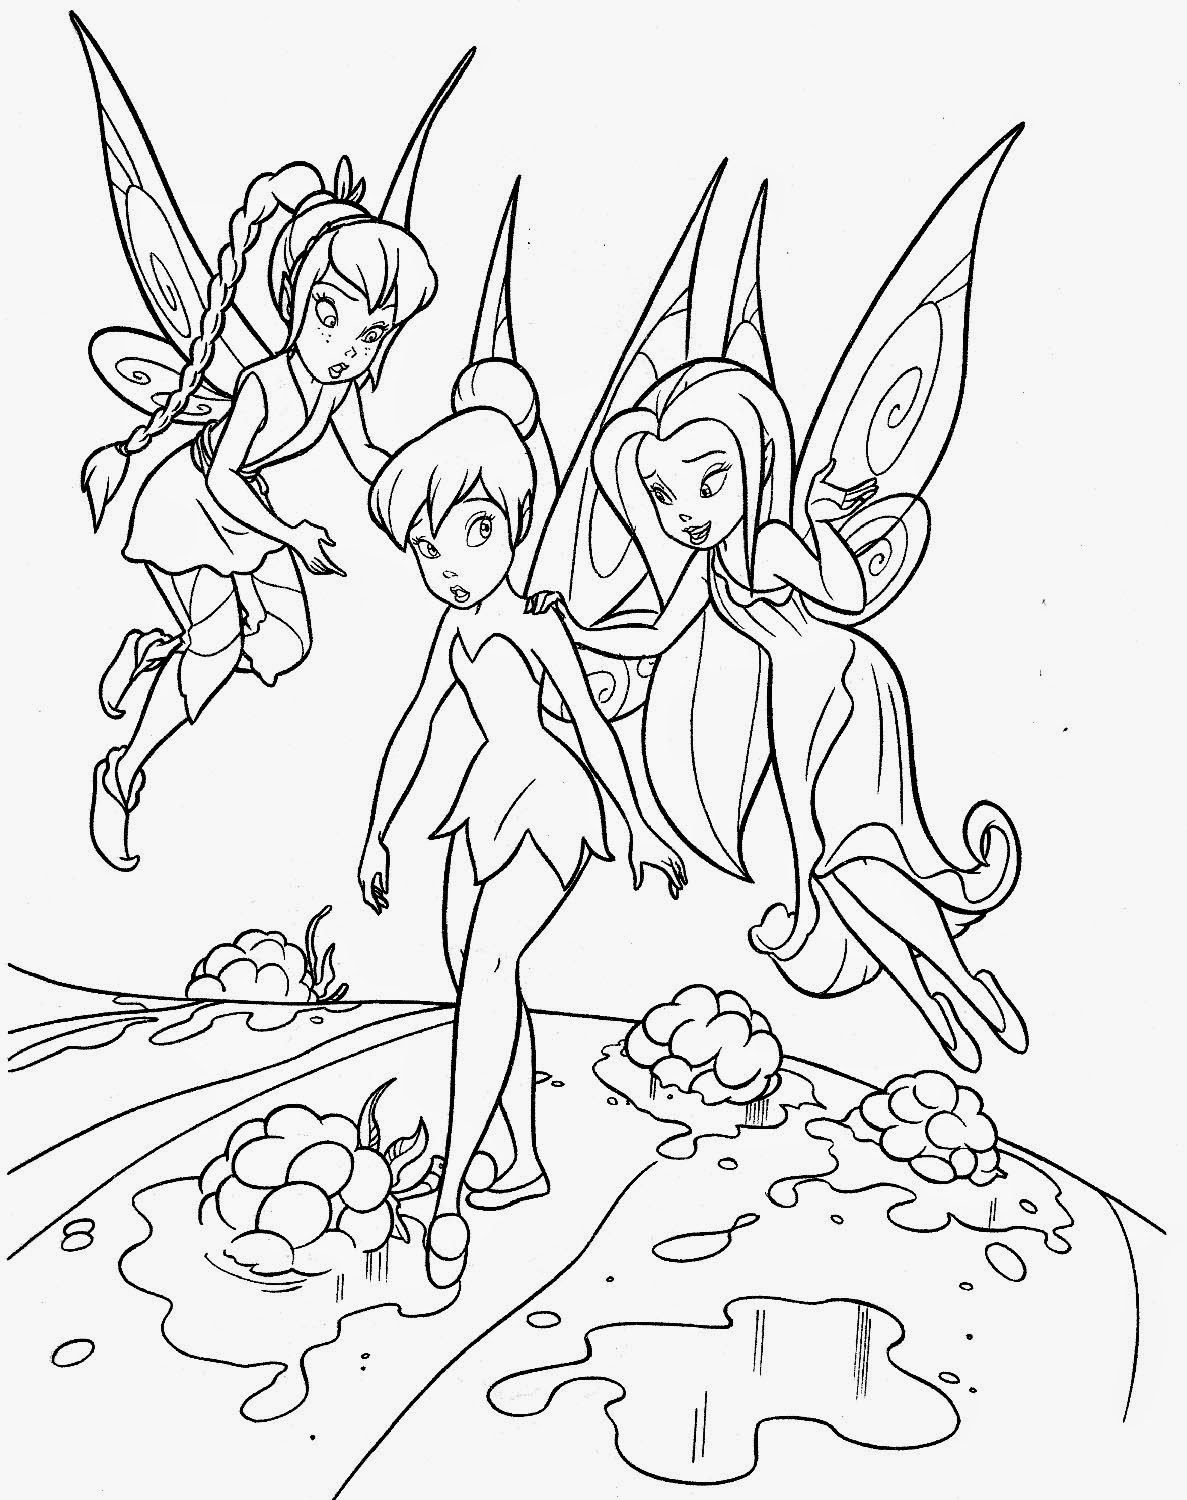 tinker bell coloring pages tinkerbell easy drawing at getdrawings free download coloring bell tinker pages